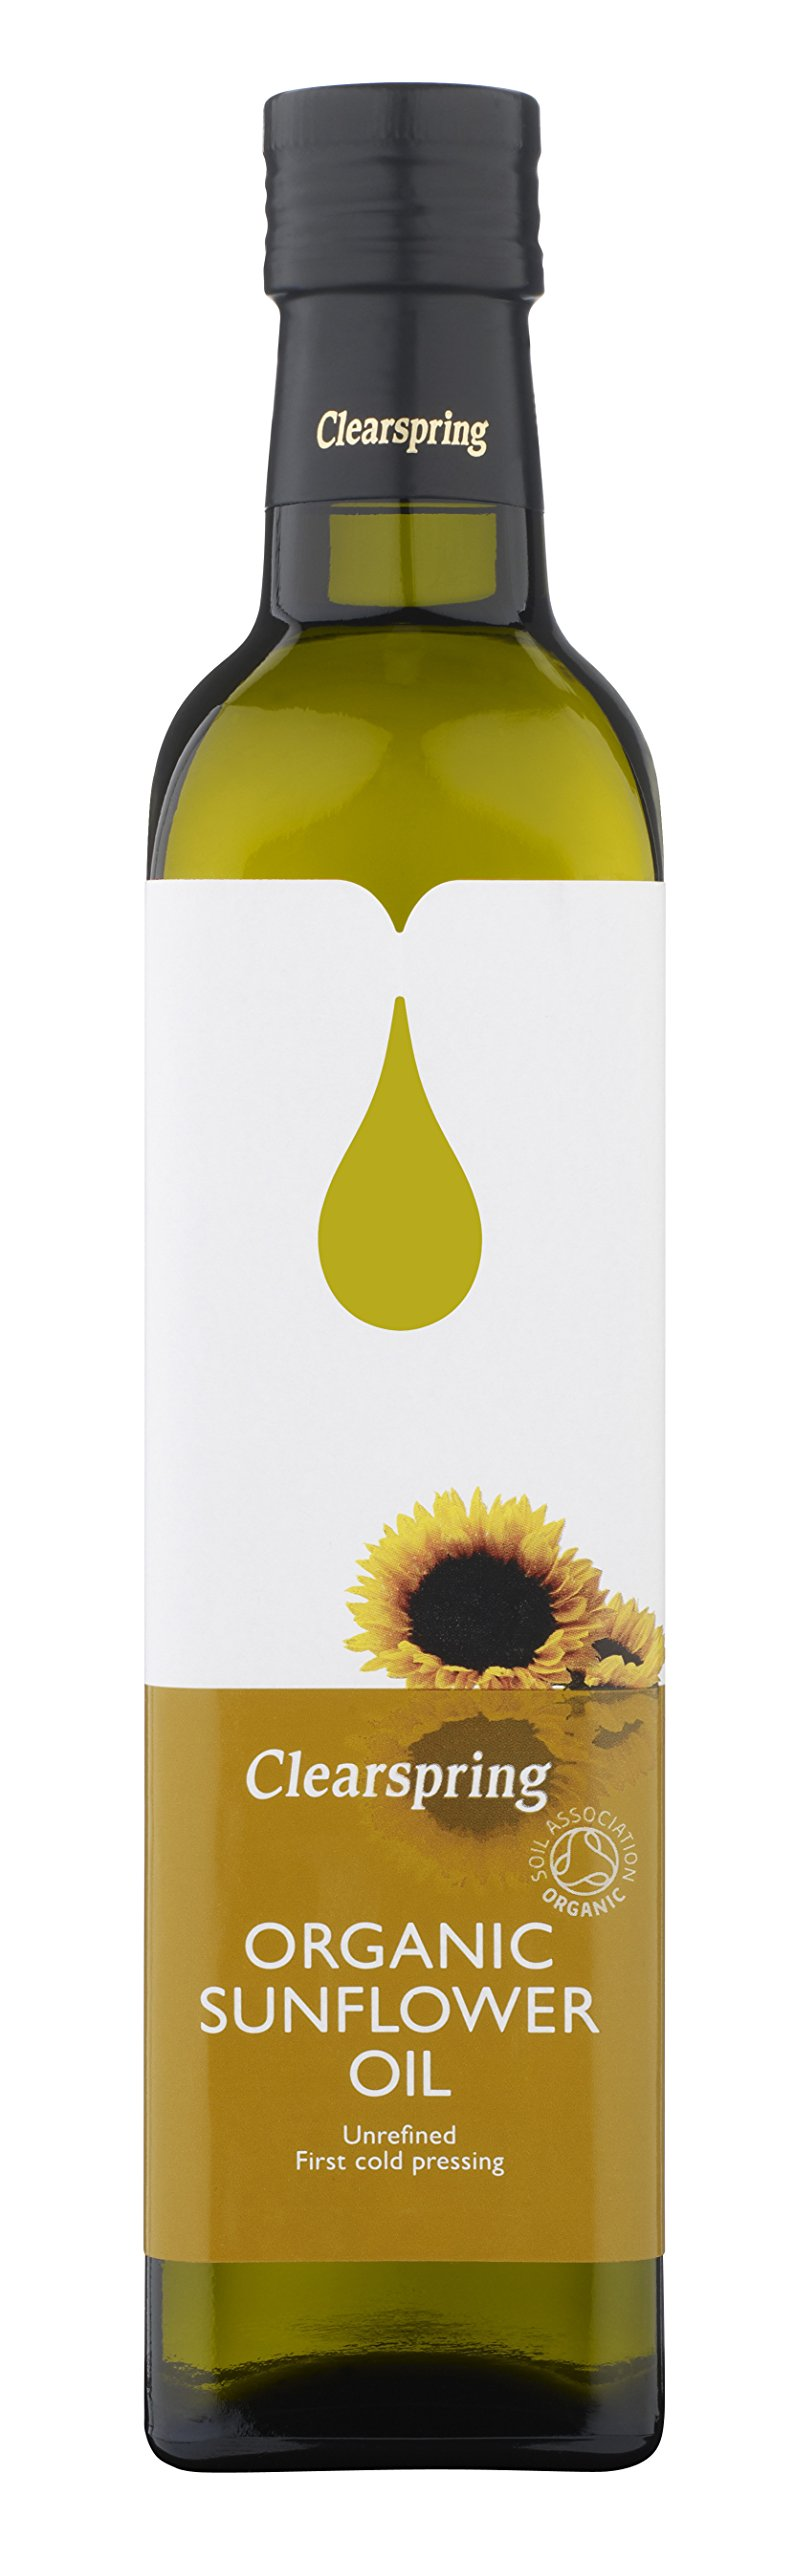 Clearspring Organic Sunflower Oil 500ml - CLS-SA105 by CLEARSPRING WHOLEFOODS